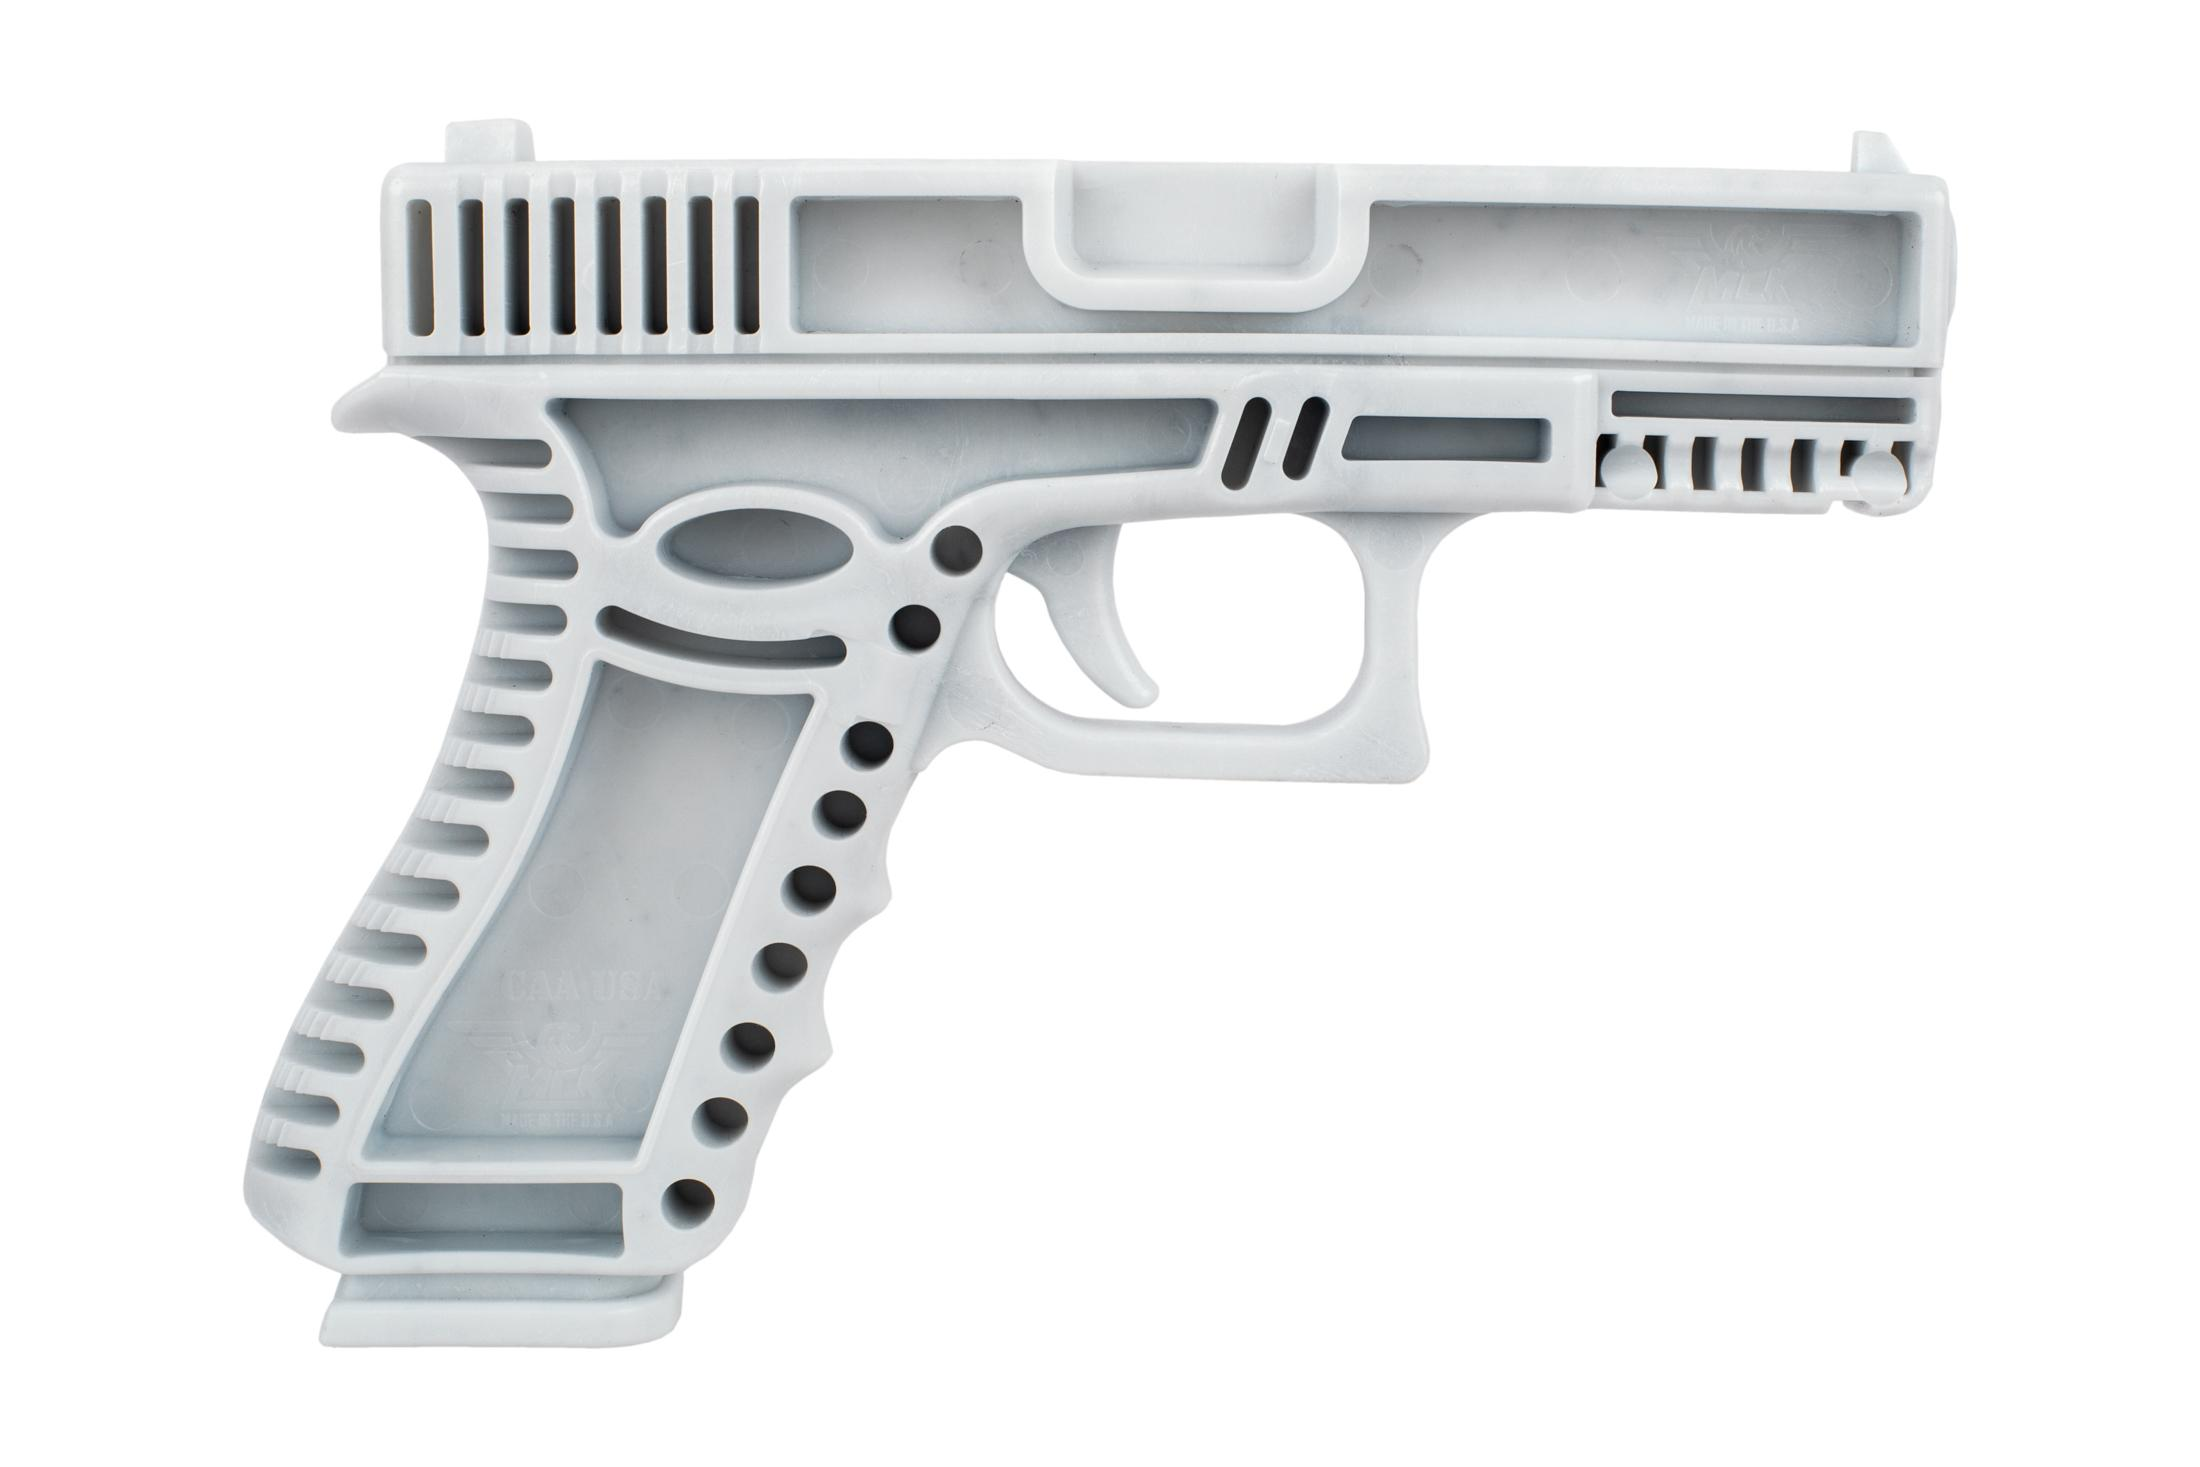 CAA white training handgun is modeled after the highly popular Glock G19 compact handgun for familiar ergonomics.